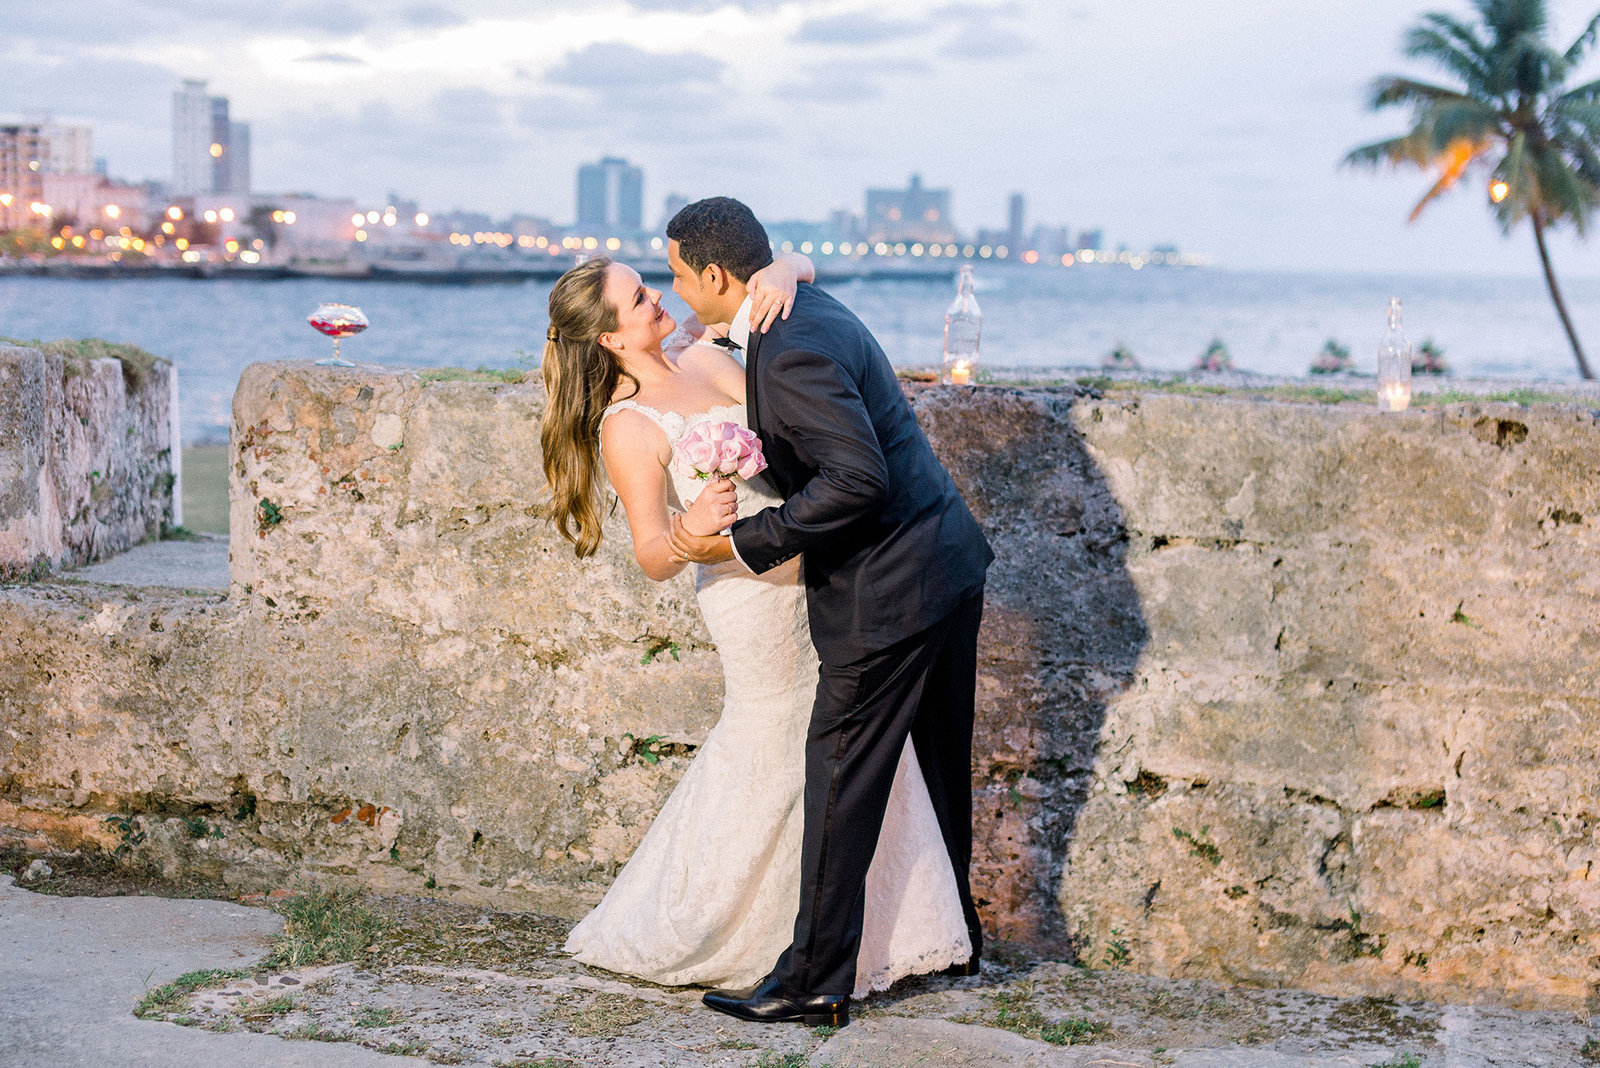 20150328-Pura-Soul-Photo-Cuba-Wedding-94